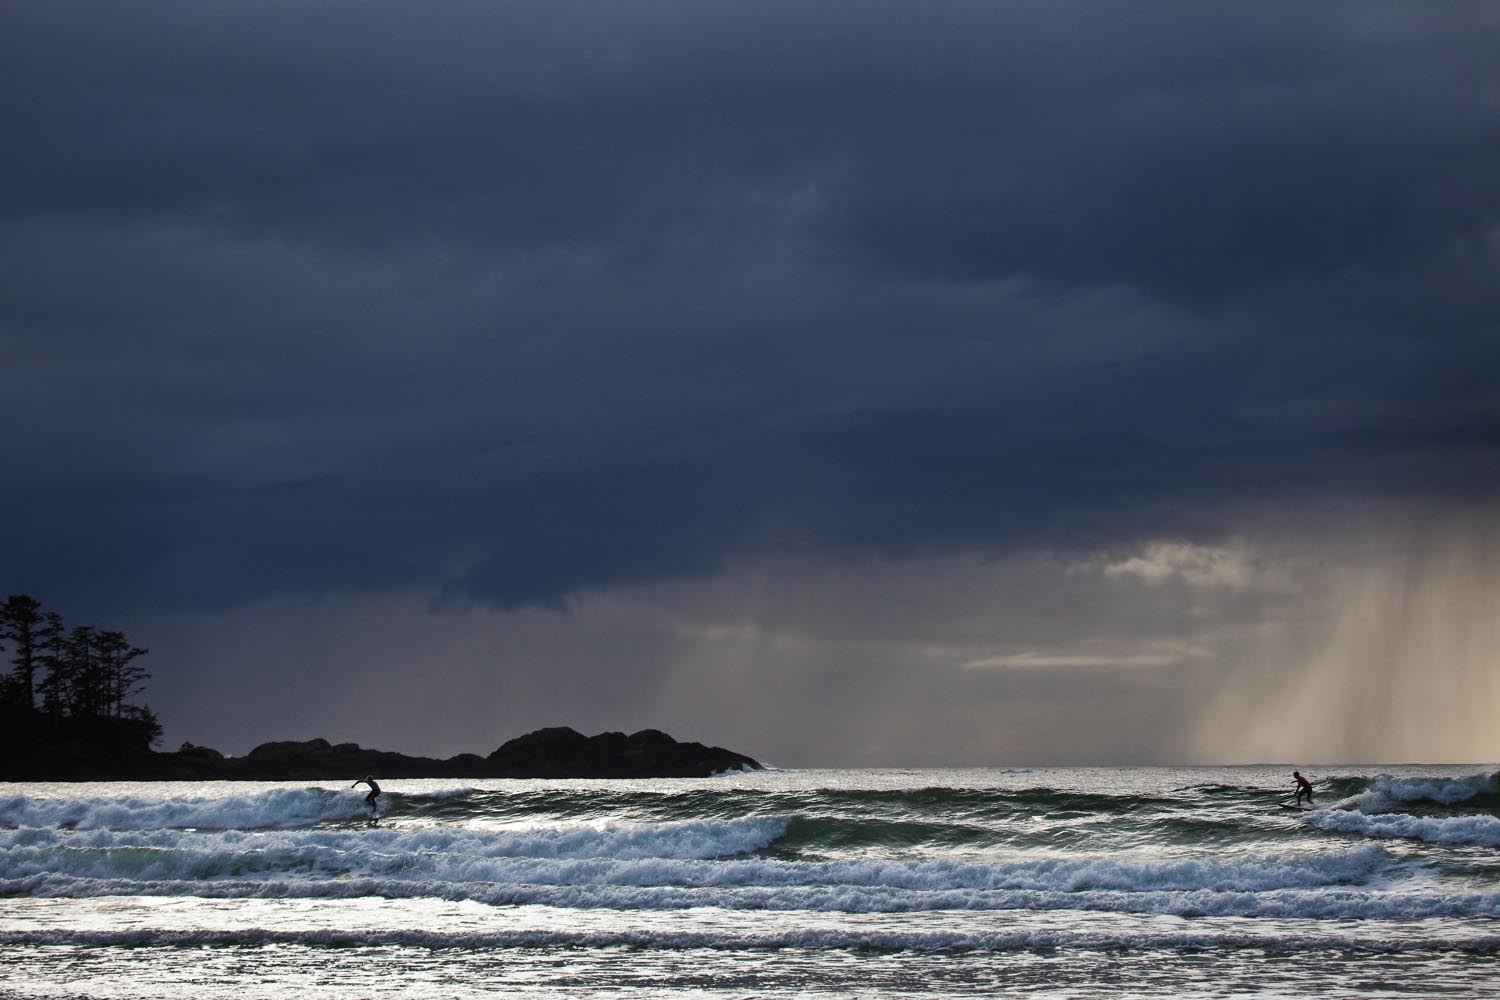 The last 10 seconds of the O'Neill CWC as Eric Geiselman and Josh Kerr ride the same wave: Chesterman Beach, Tofino